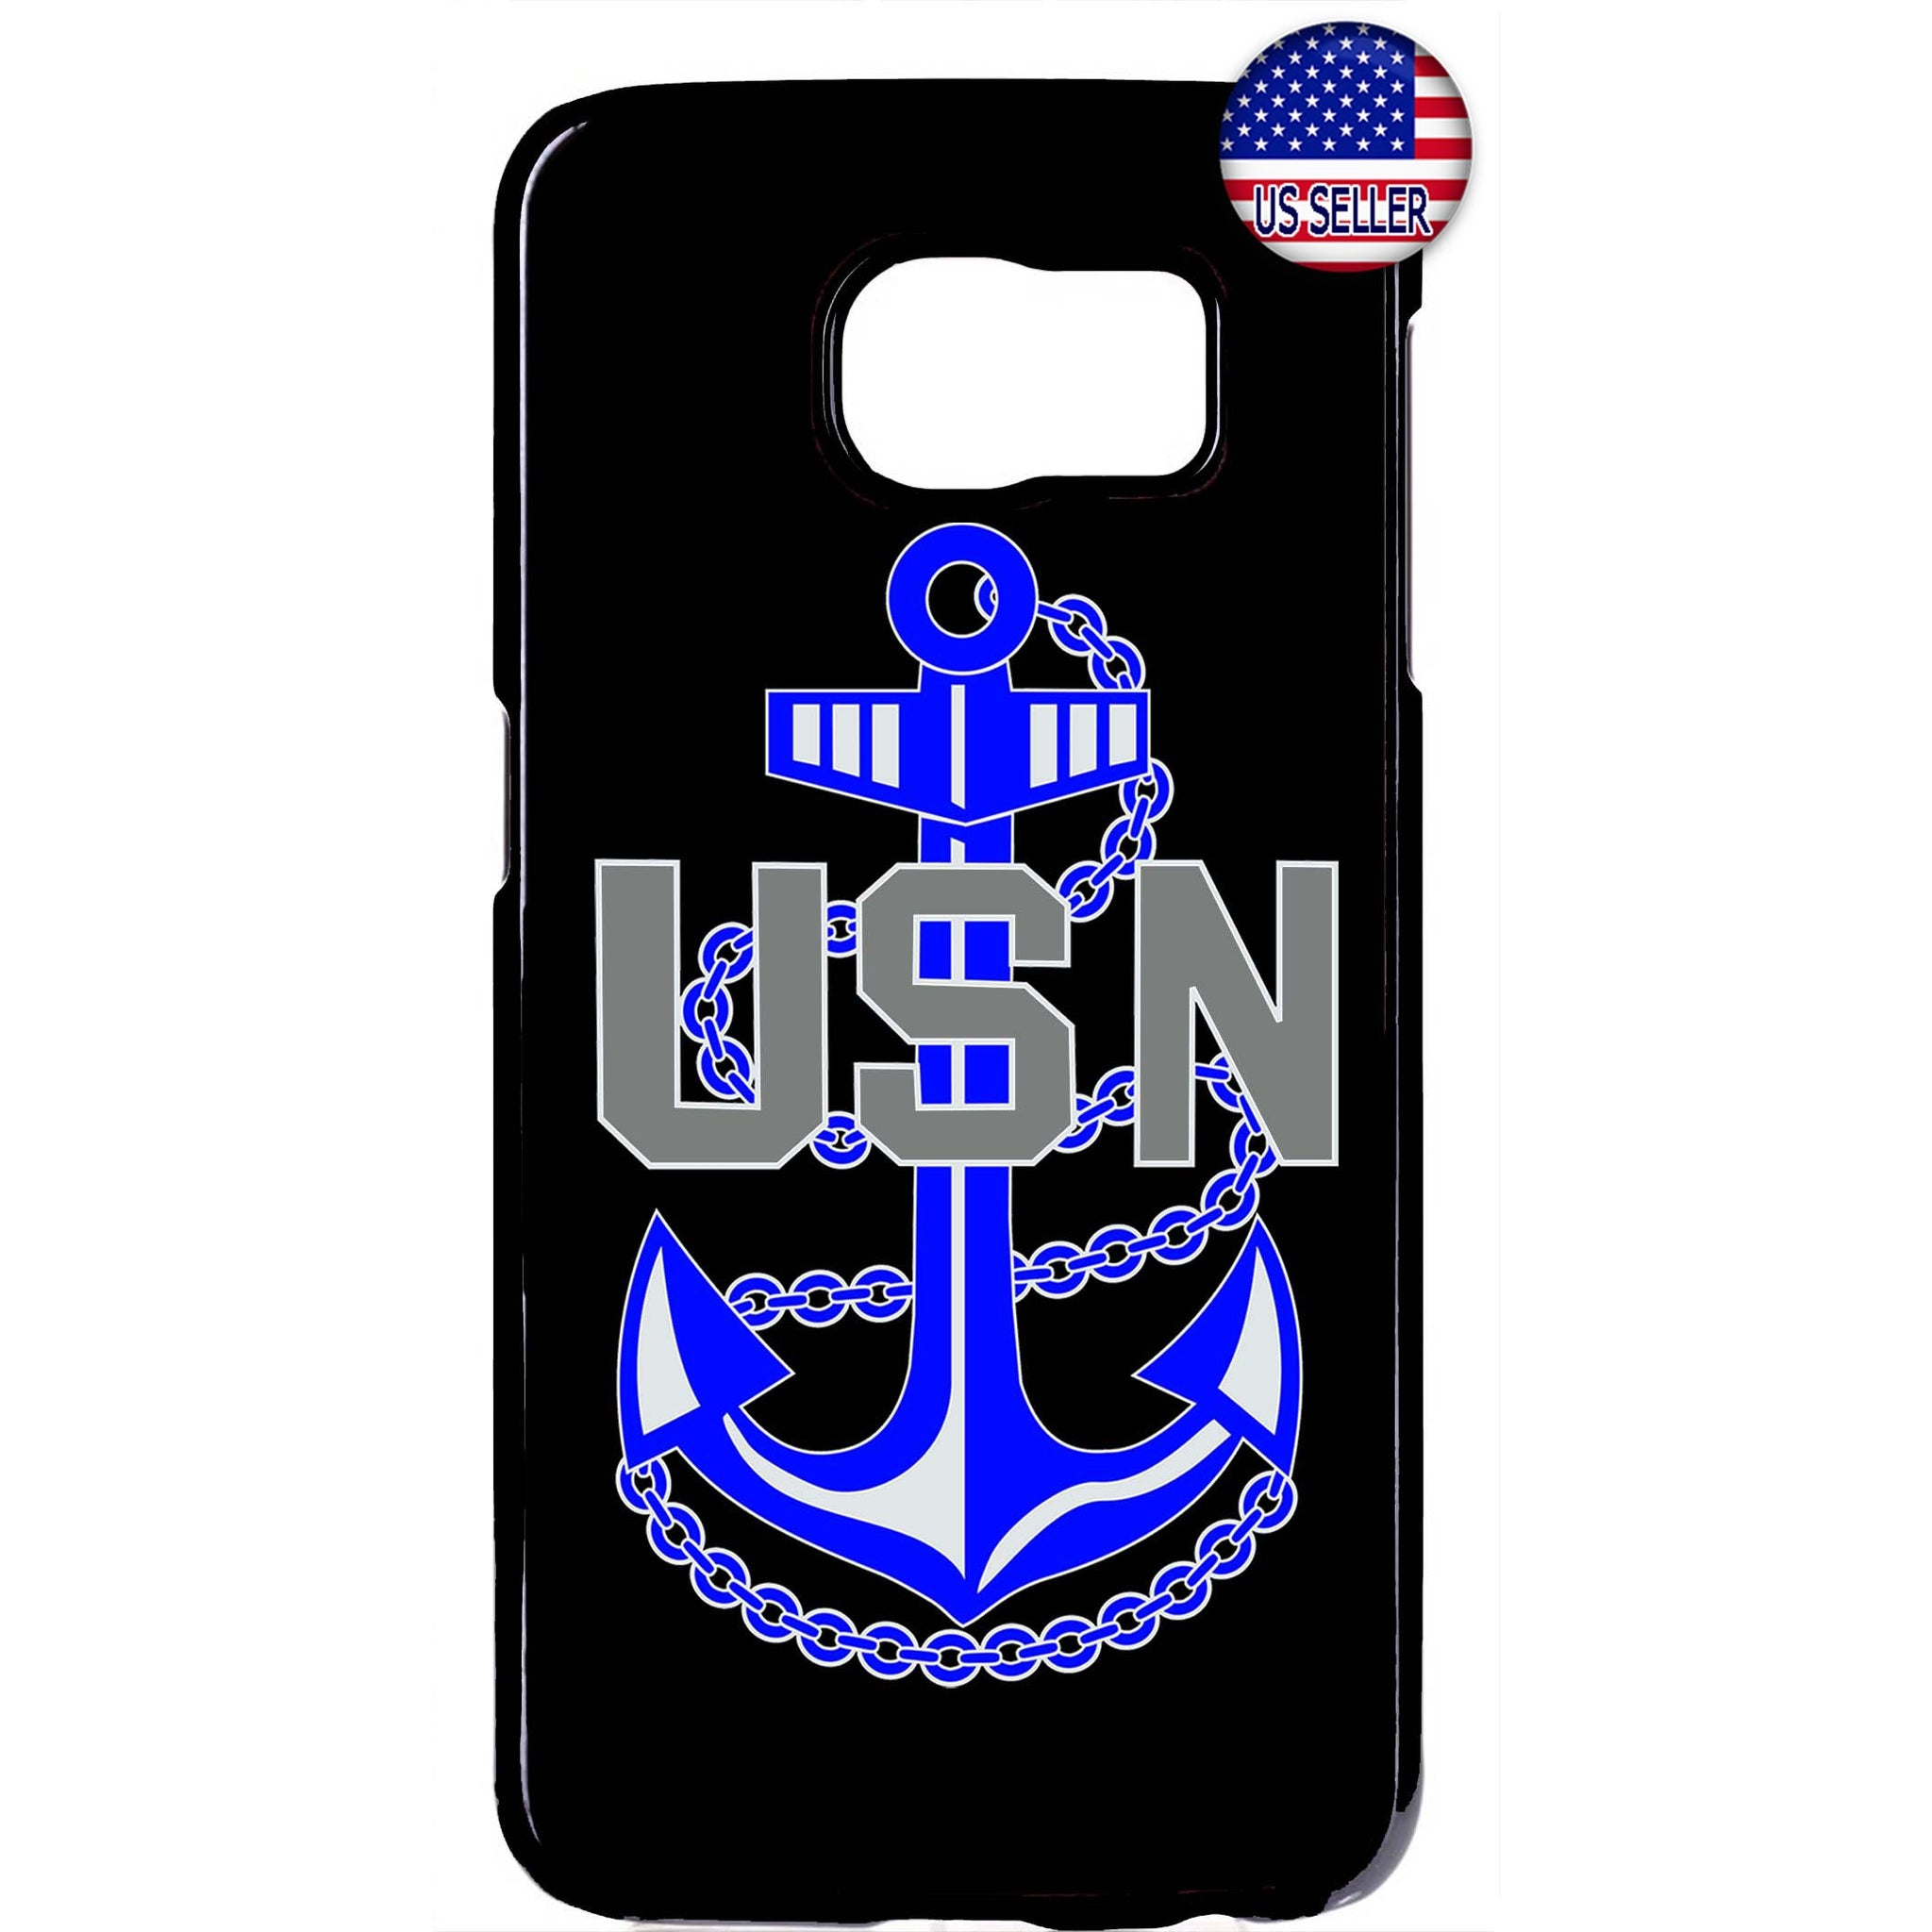 USN US Navy Blue Anchor United States Rubber Case Cover For Samsung Galaxy Note